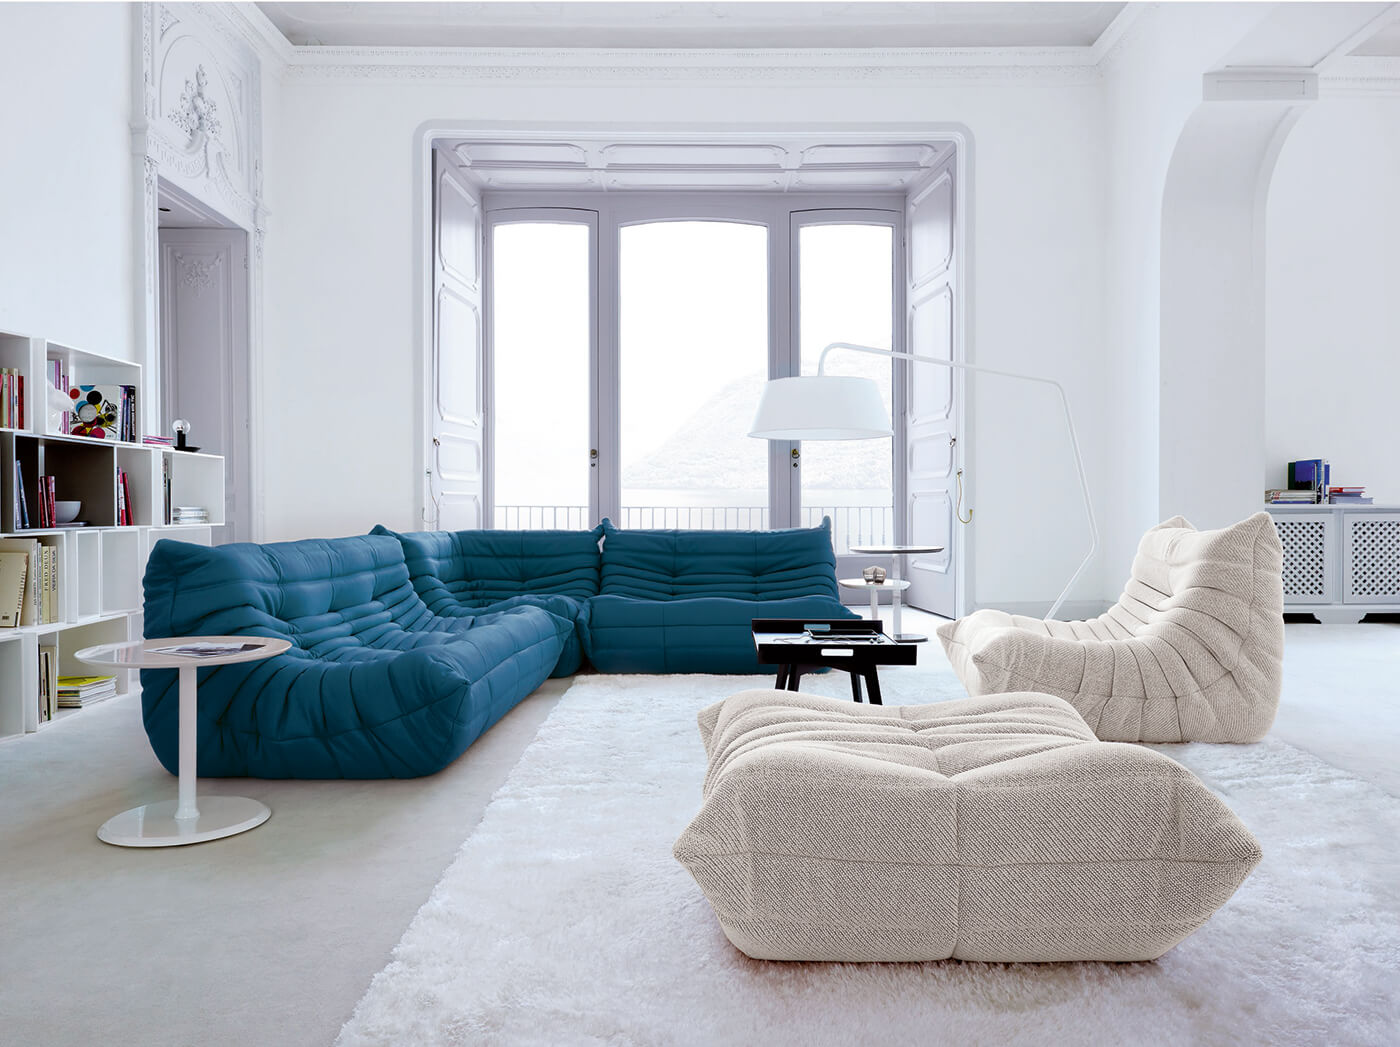 L 39 inimitable canap togo de chez ligne roset frenchy fancy for Salon togo ligne roset